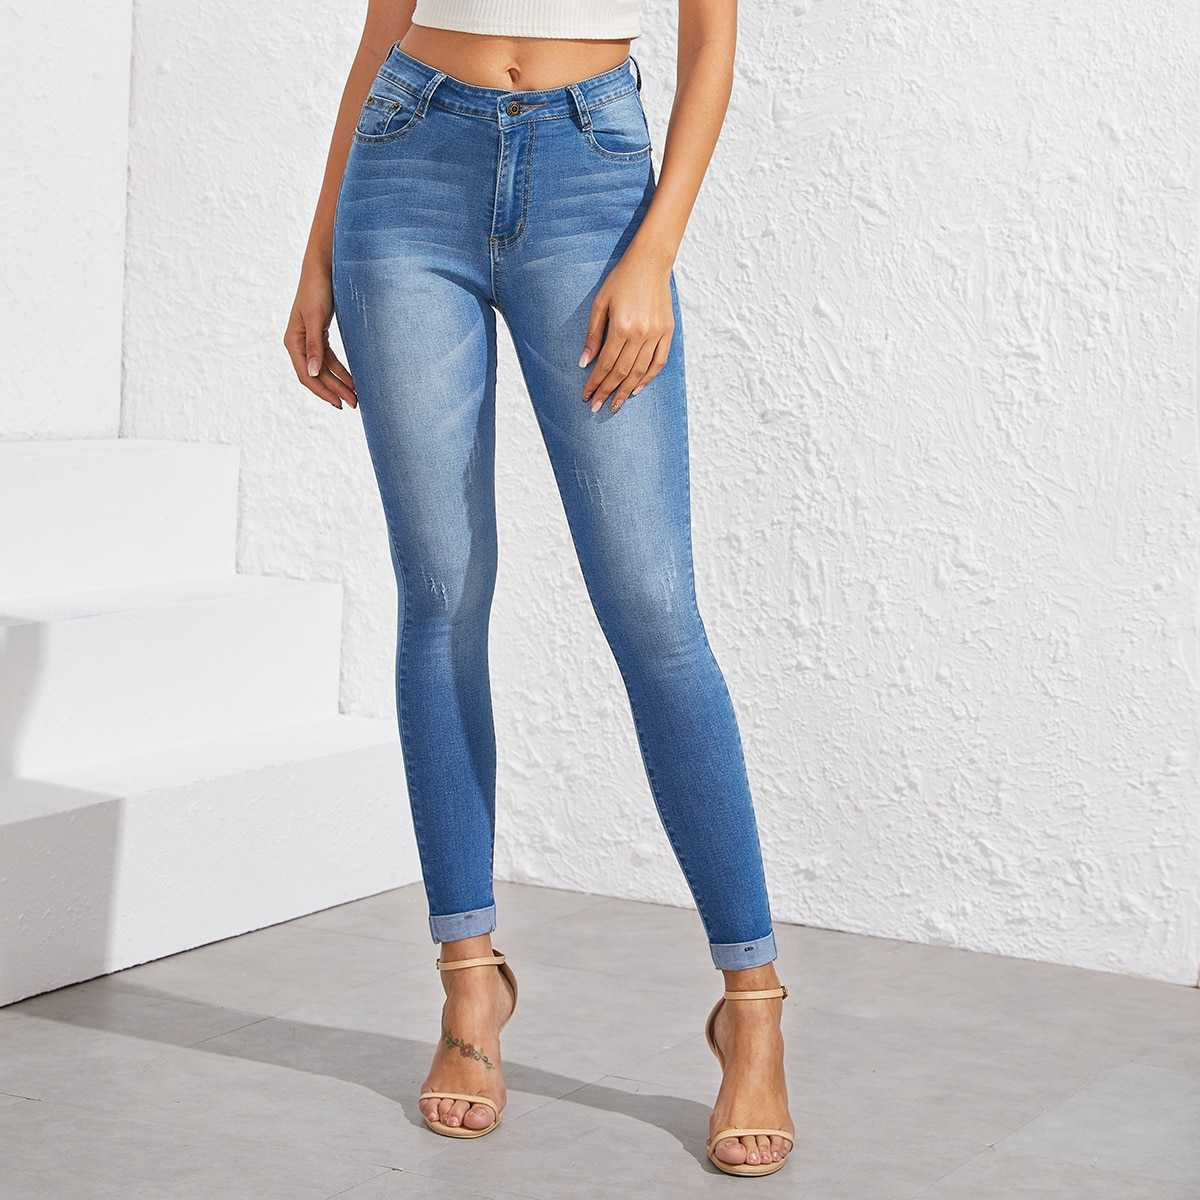 Washed Cuffed Hem Skinny Jeans in Blue by ROMWE on GOOFASH